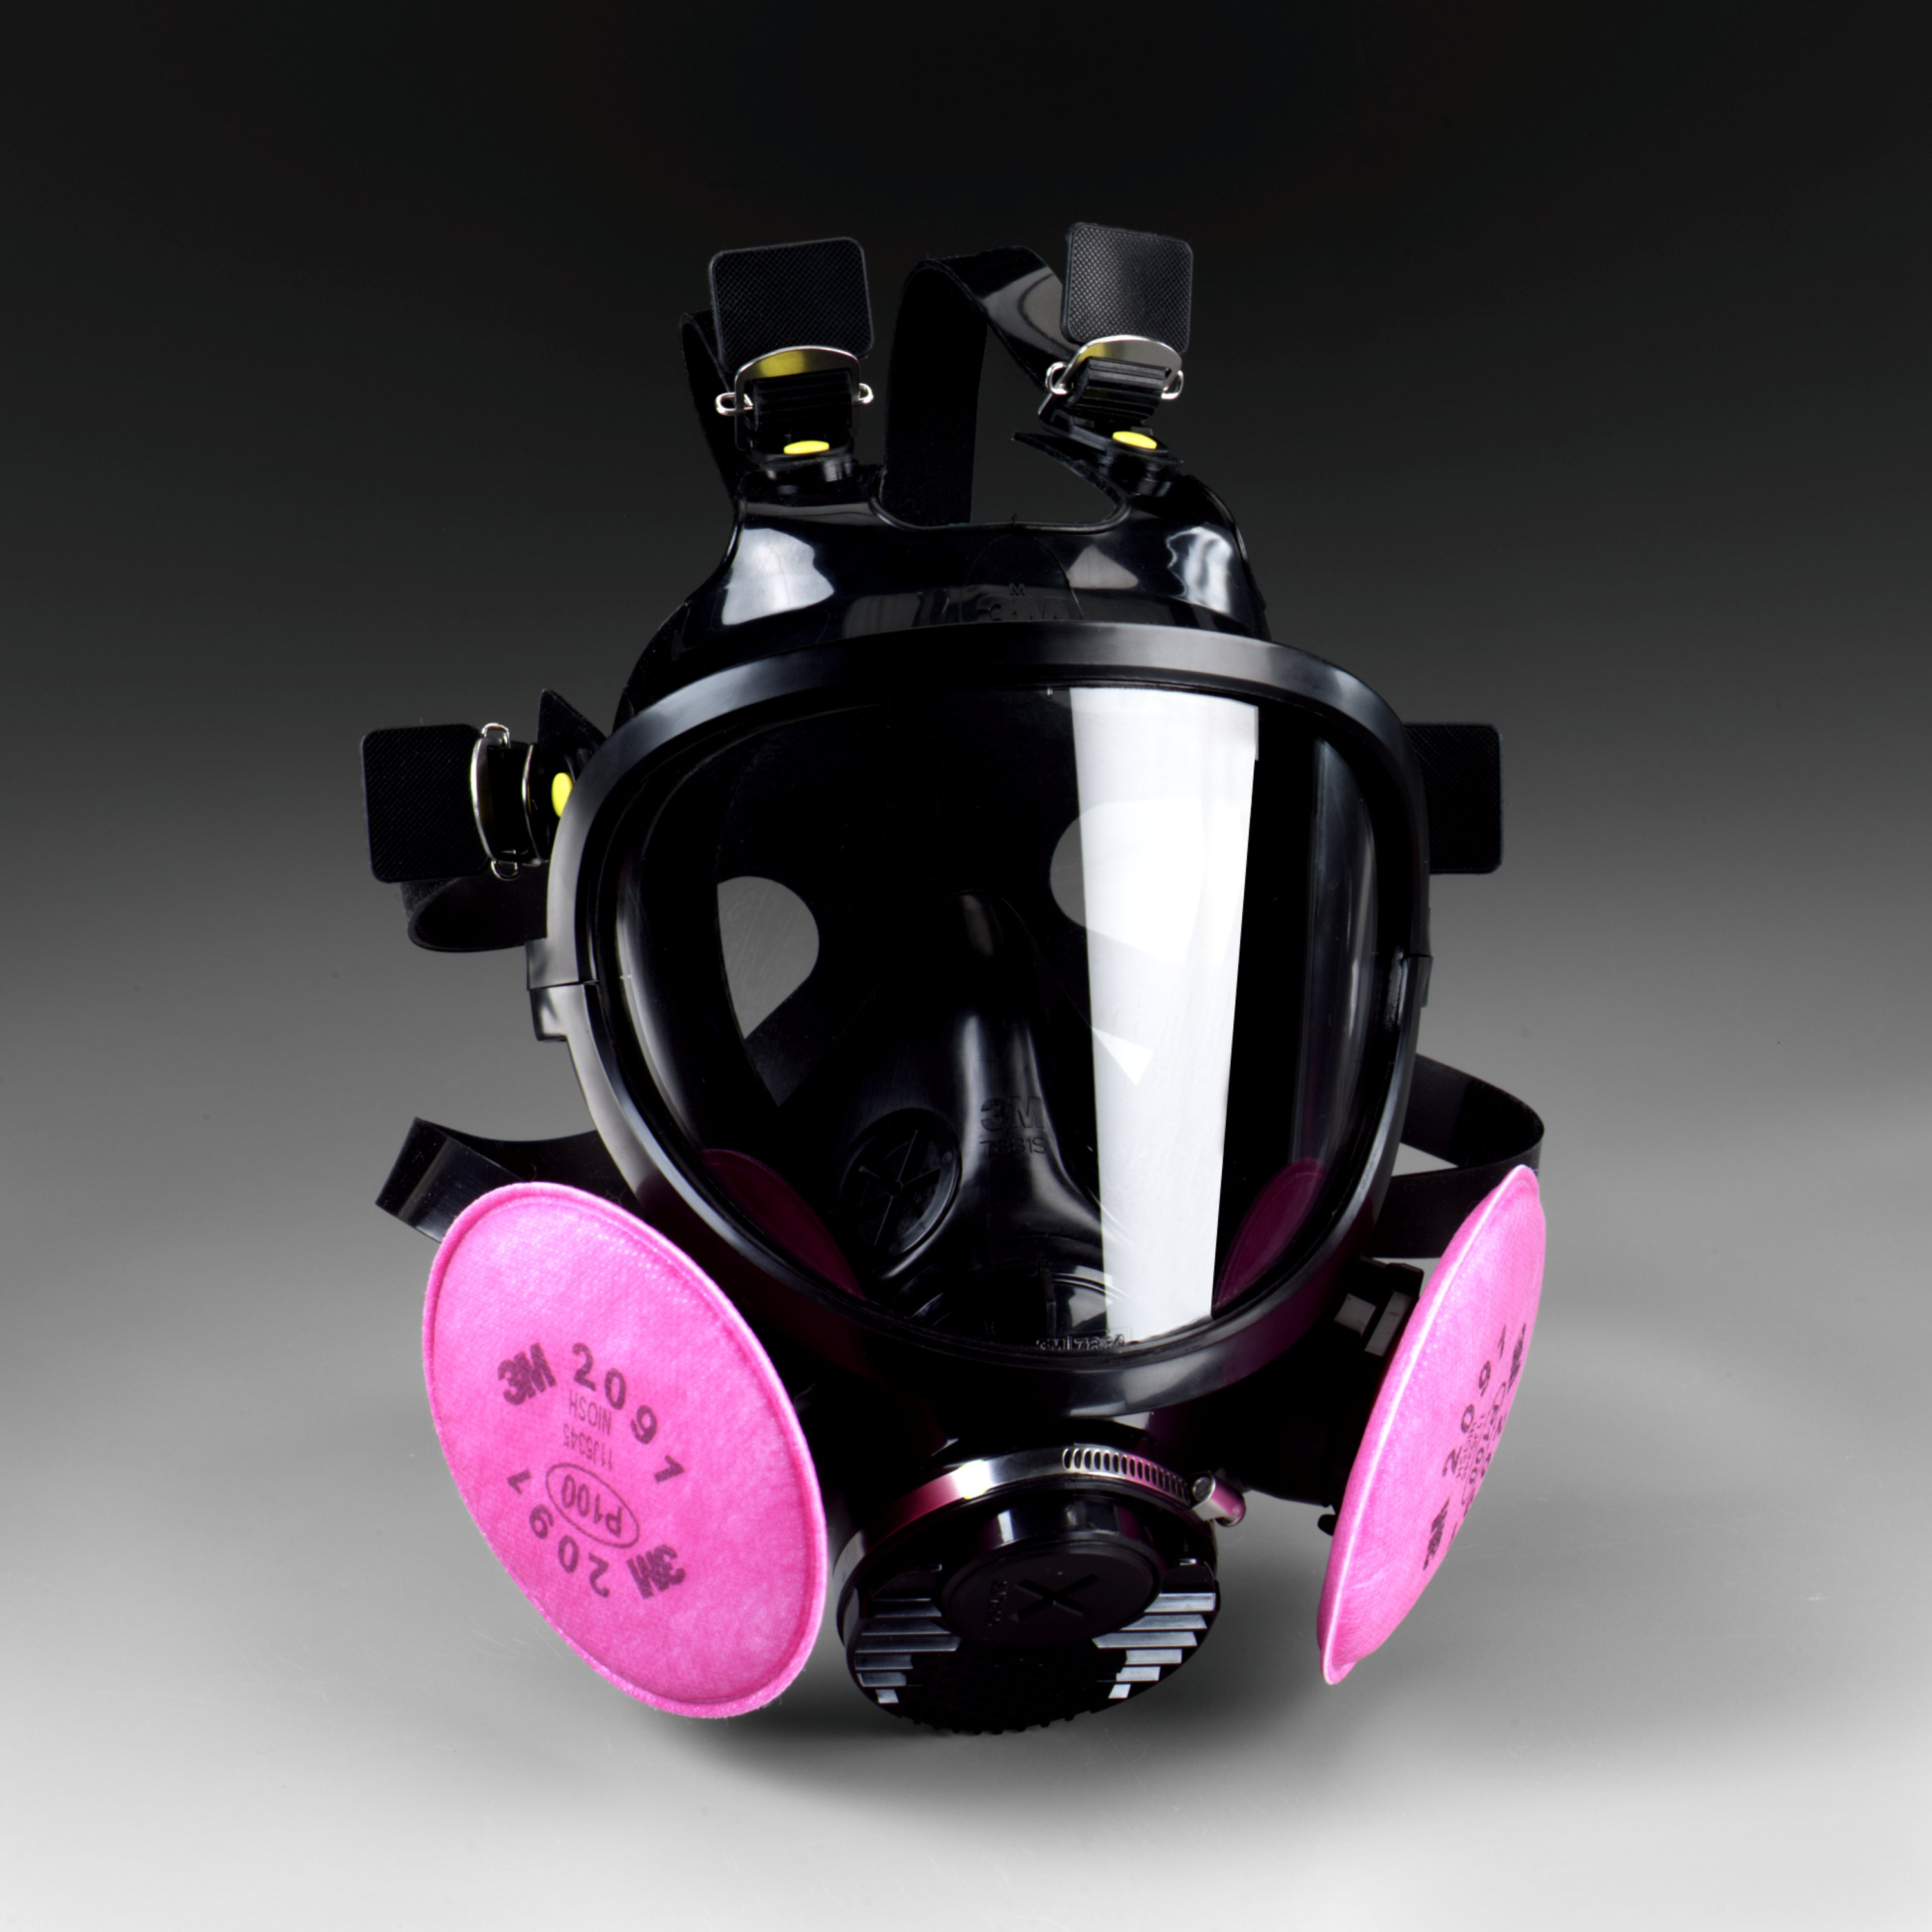 3M™ Full Facepiece Reusable Respirator 7800S-S, Small, Silicone 1EA/Case -- DUE TO HIGH DEMAND, we may be unable to fulfill any orders for this product regardless of stock status indicated.